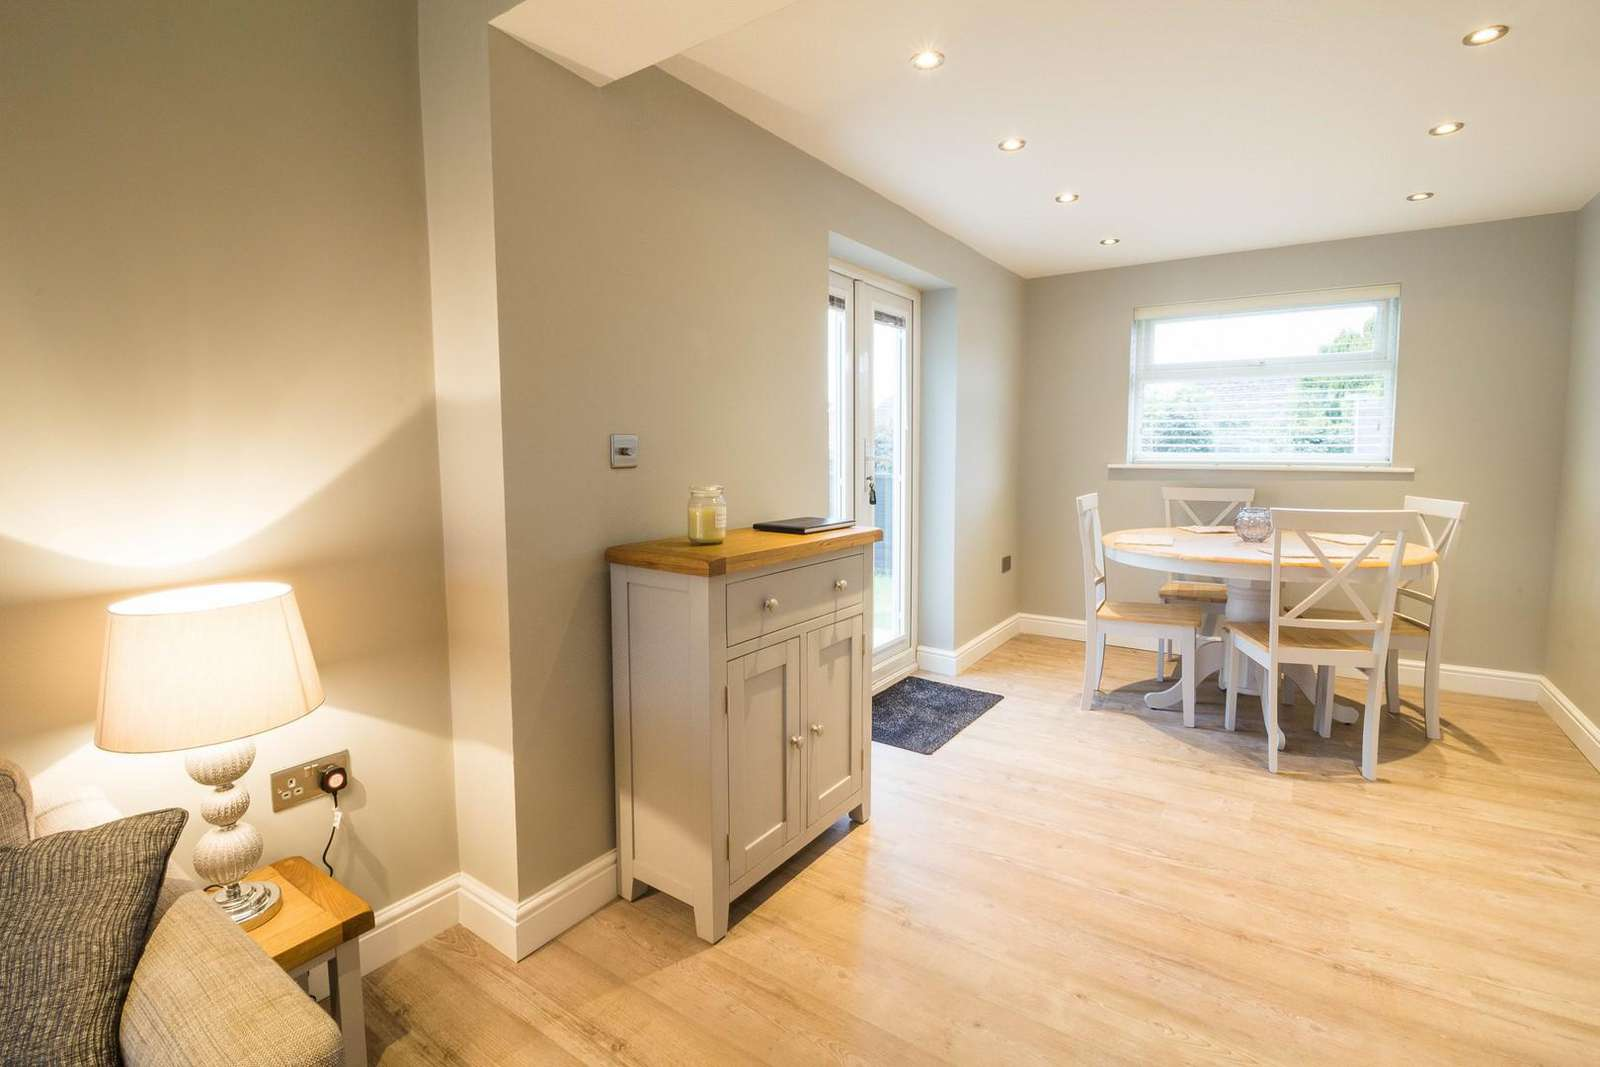 So many families have enjoyed their stay at this holiday cottage